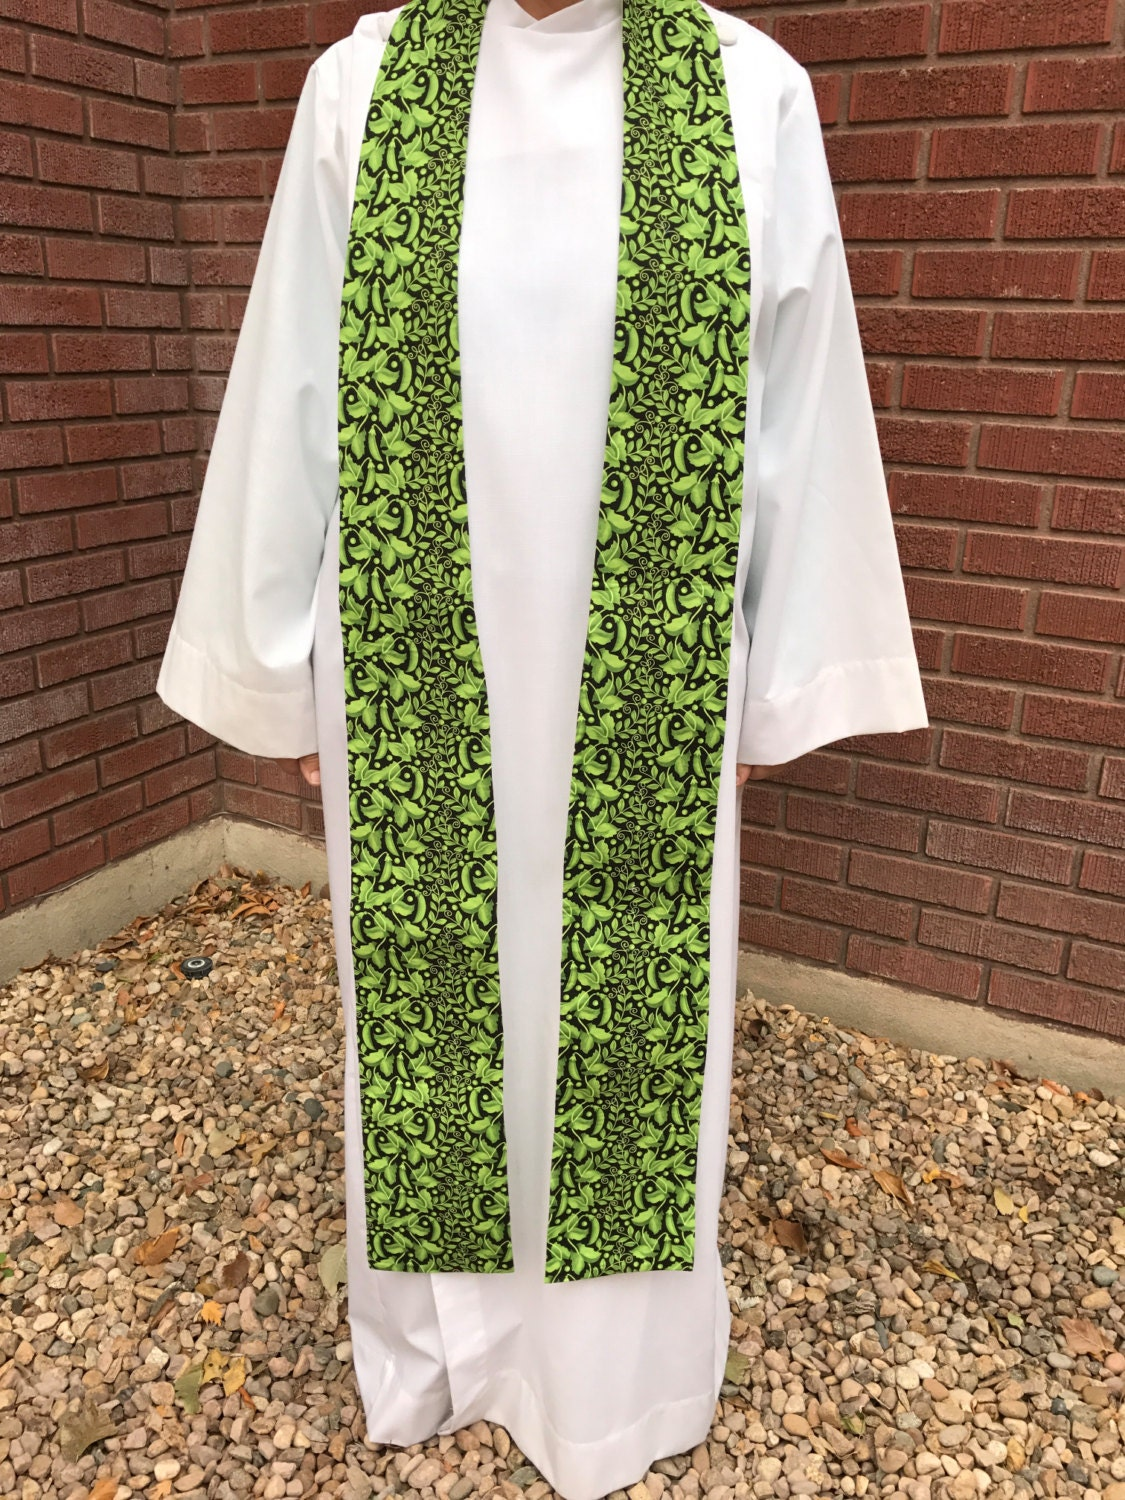 Green Garden Clergy Stoles Ordinary Times Clergy Stole